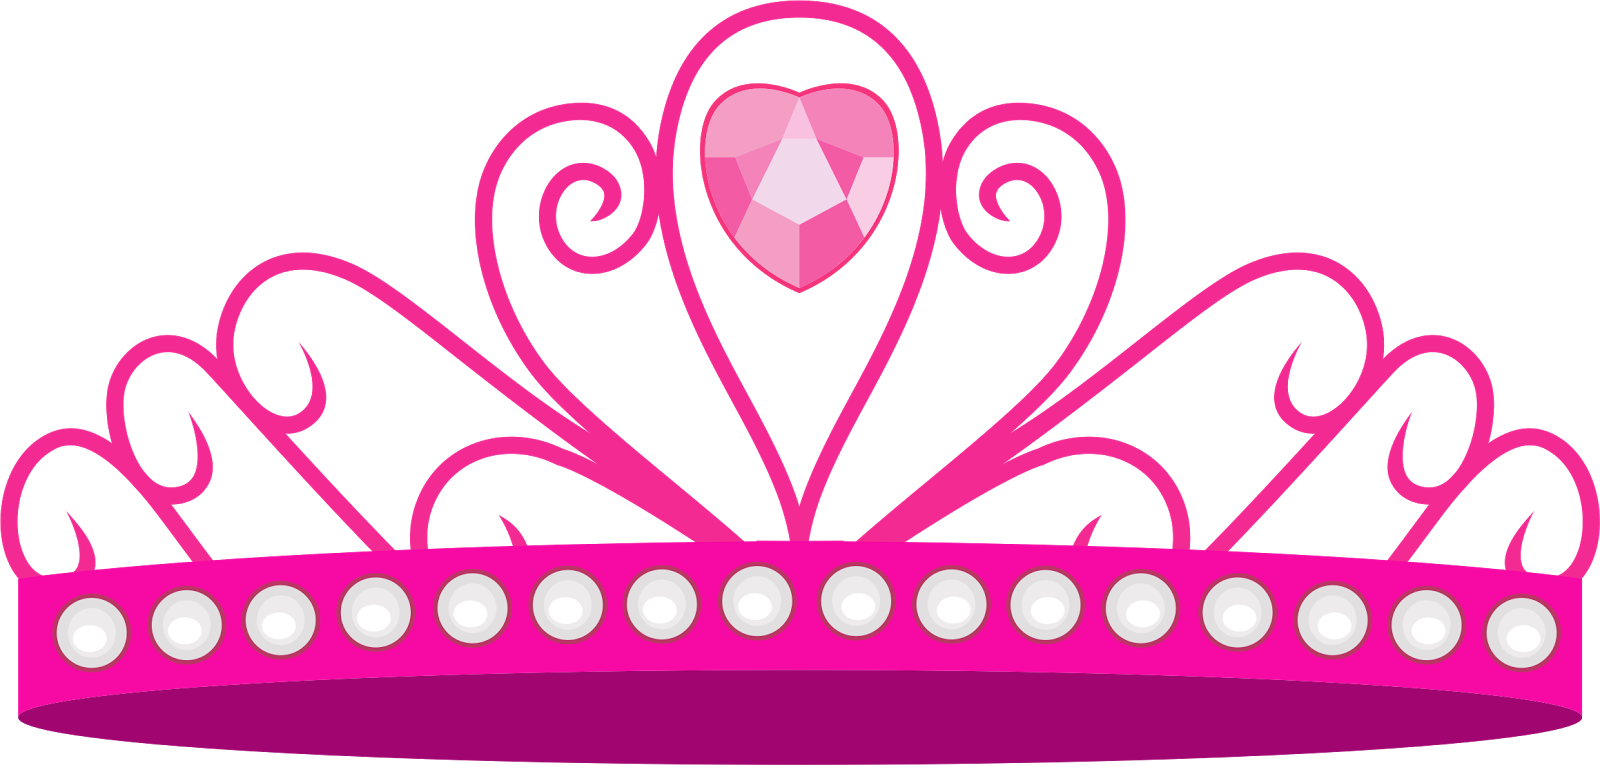 Princess crown with hearts clipart vector download Crown Disney Princess Clip art - crown 1600*765 transprent Png Free ... vector download